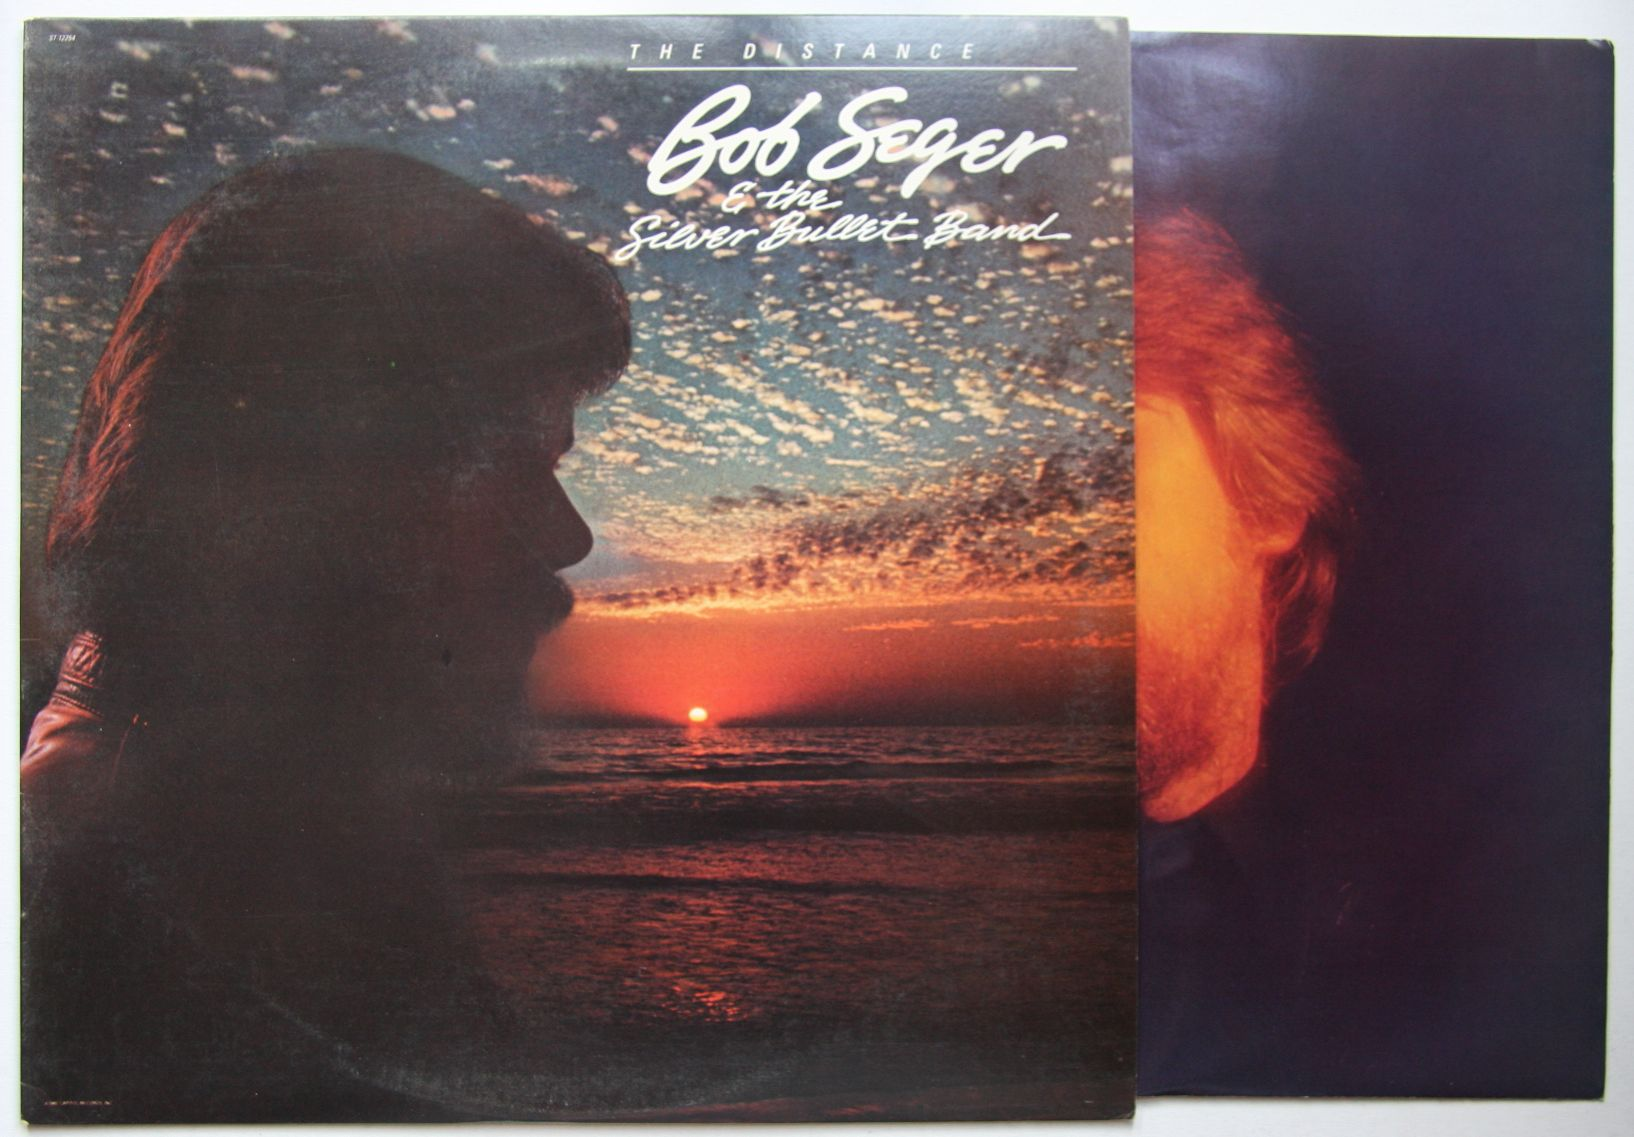 Bob Seger The Distance Records, Vinyl and CDs - Hard to Find and Out ...